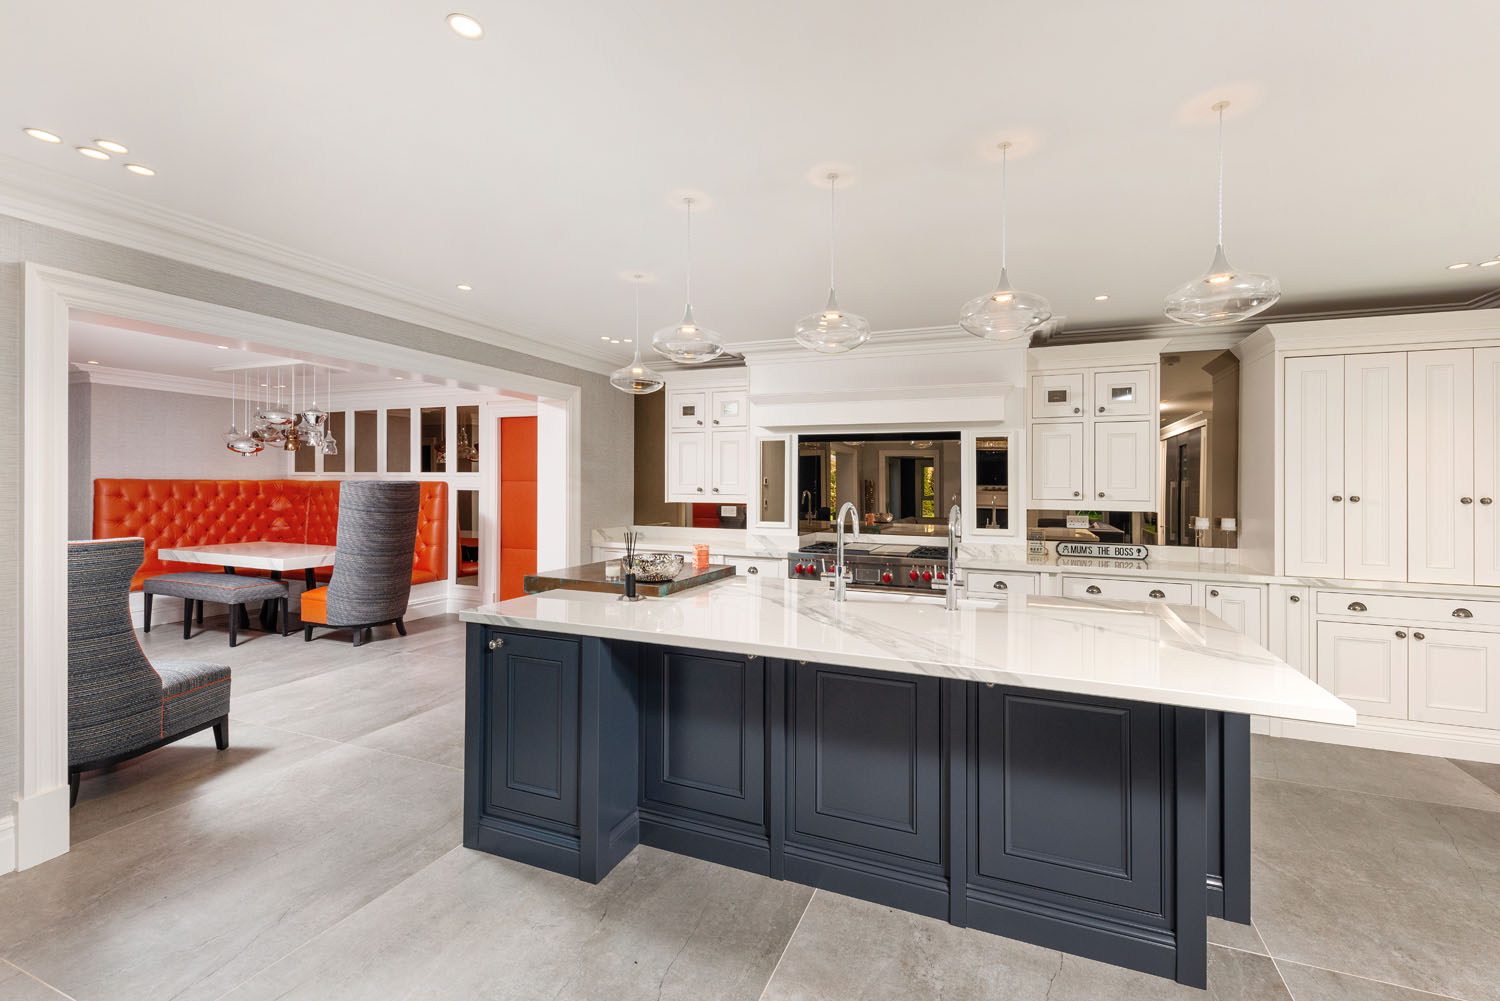 Image of 09 in Dekton Flooring and Kitchen Worksurfaces Add Timeless Elegance to This Classic Family Home - Cosentino